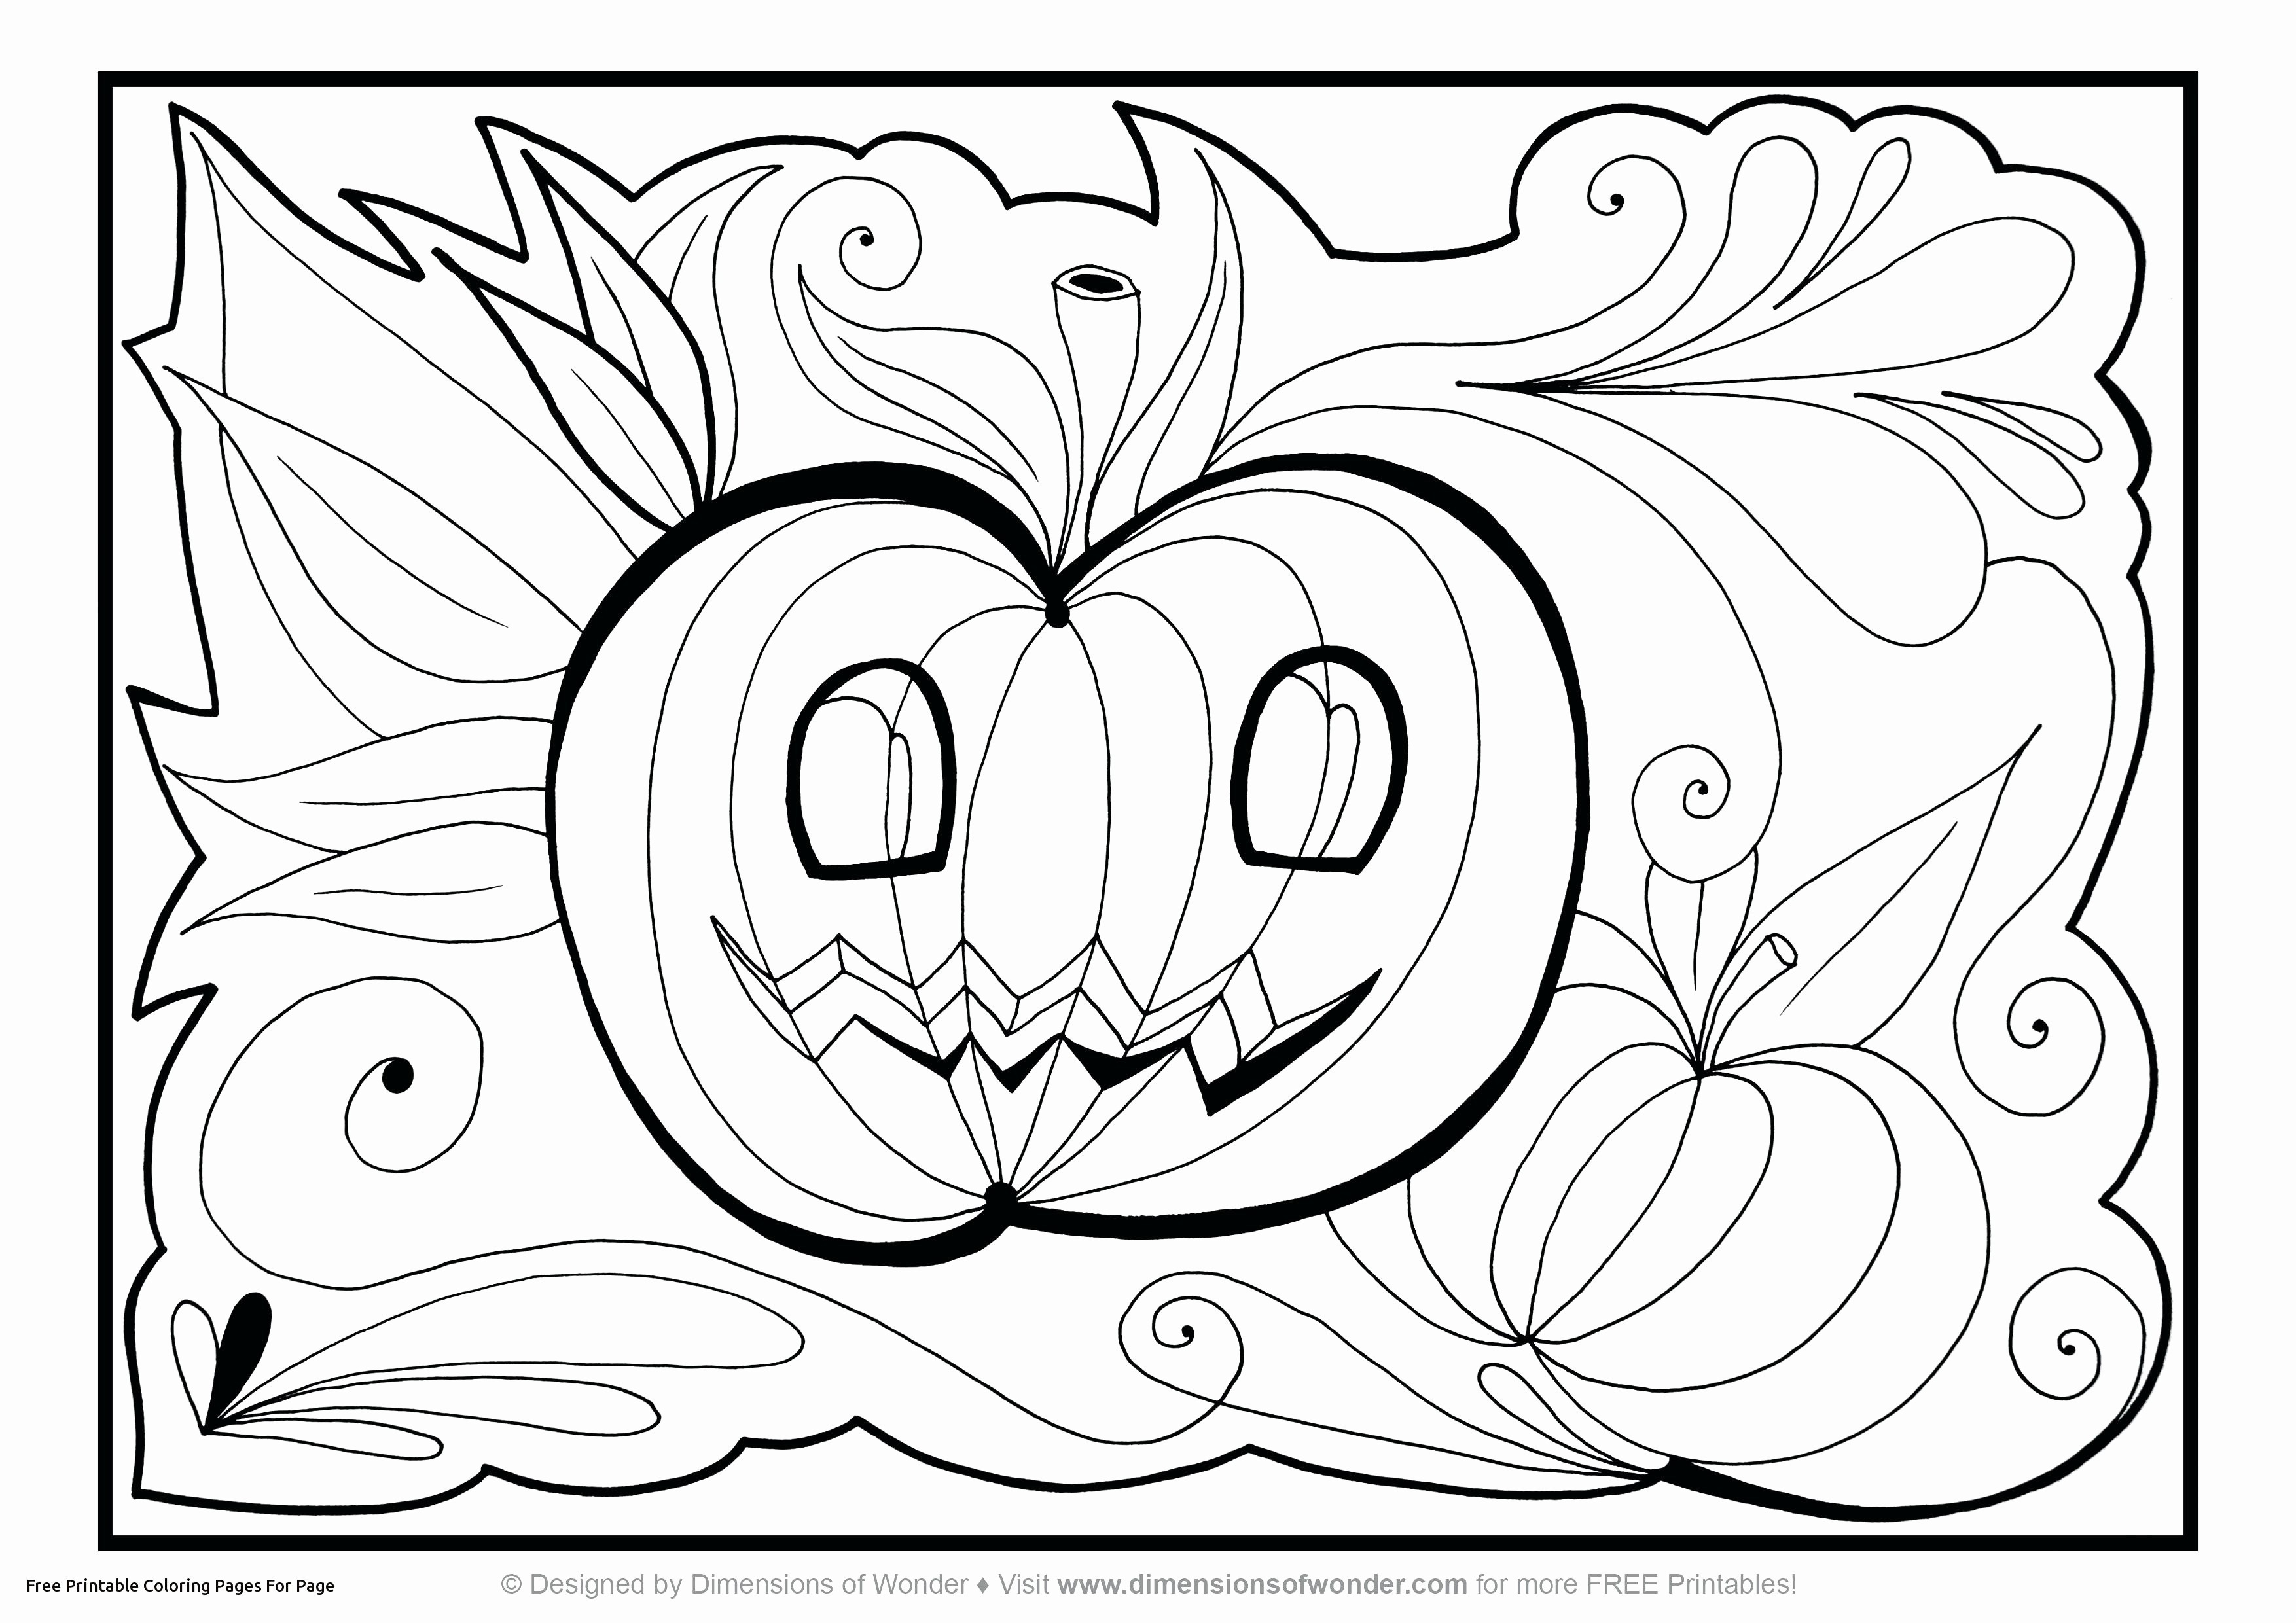 Free Printable Halloween Coloring Page Coloring Book World Free Printable Halloween Coloring Sheets Book